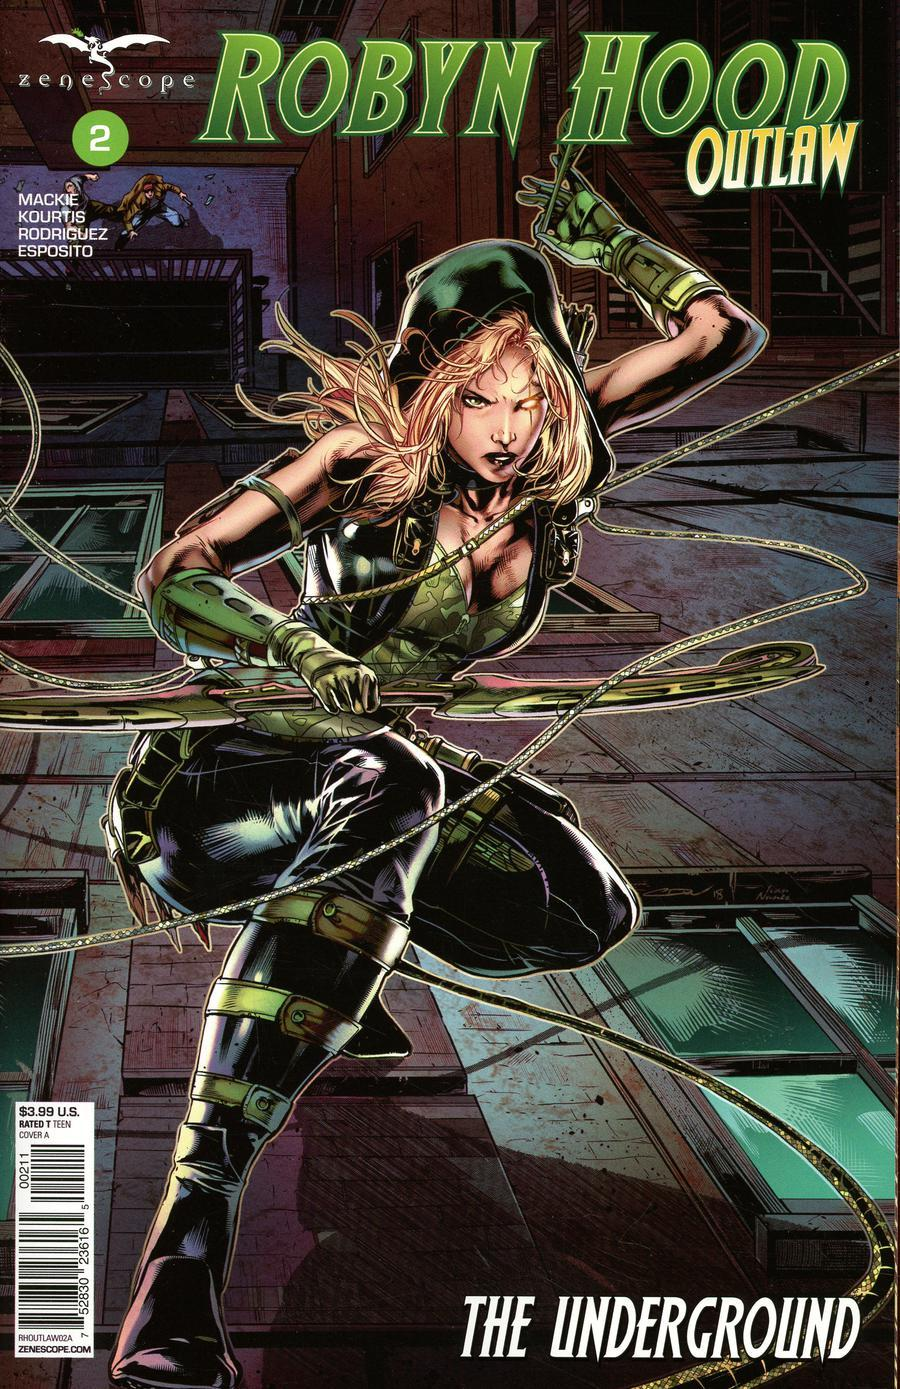 Grimm Fairy Tales Presents Robyn Hood Outlaw Vol. 1 #2